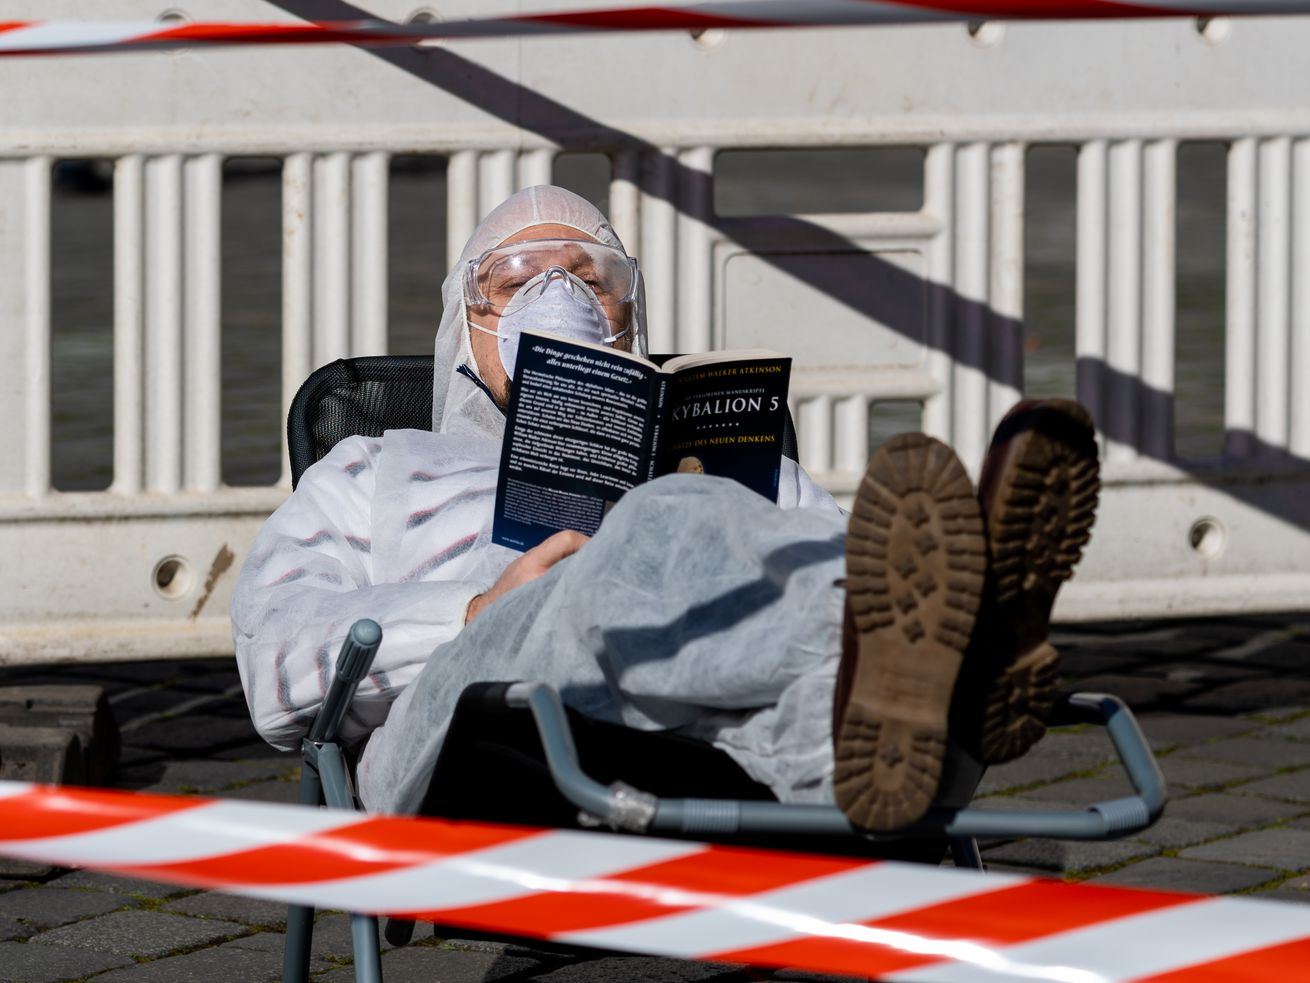 A Dresden resident lies on a sun lounger with a book, a mask, and protective clothing behind barrier tape.